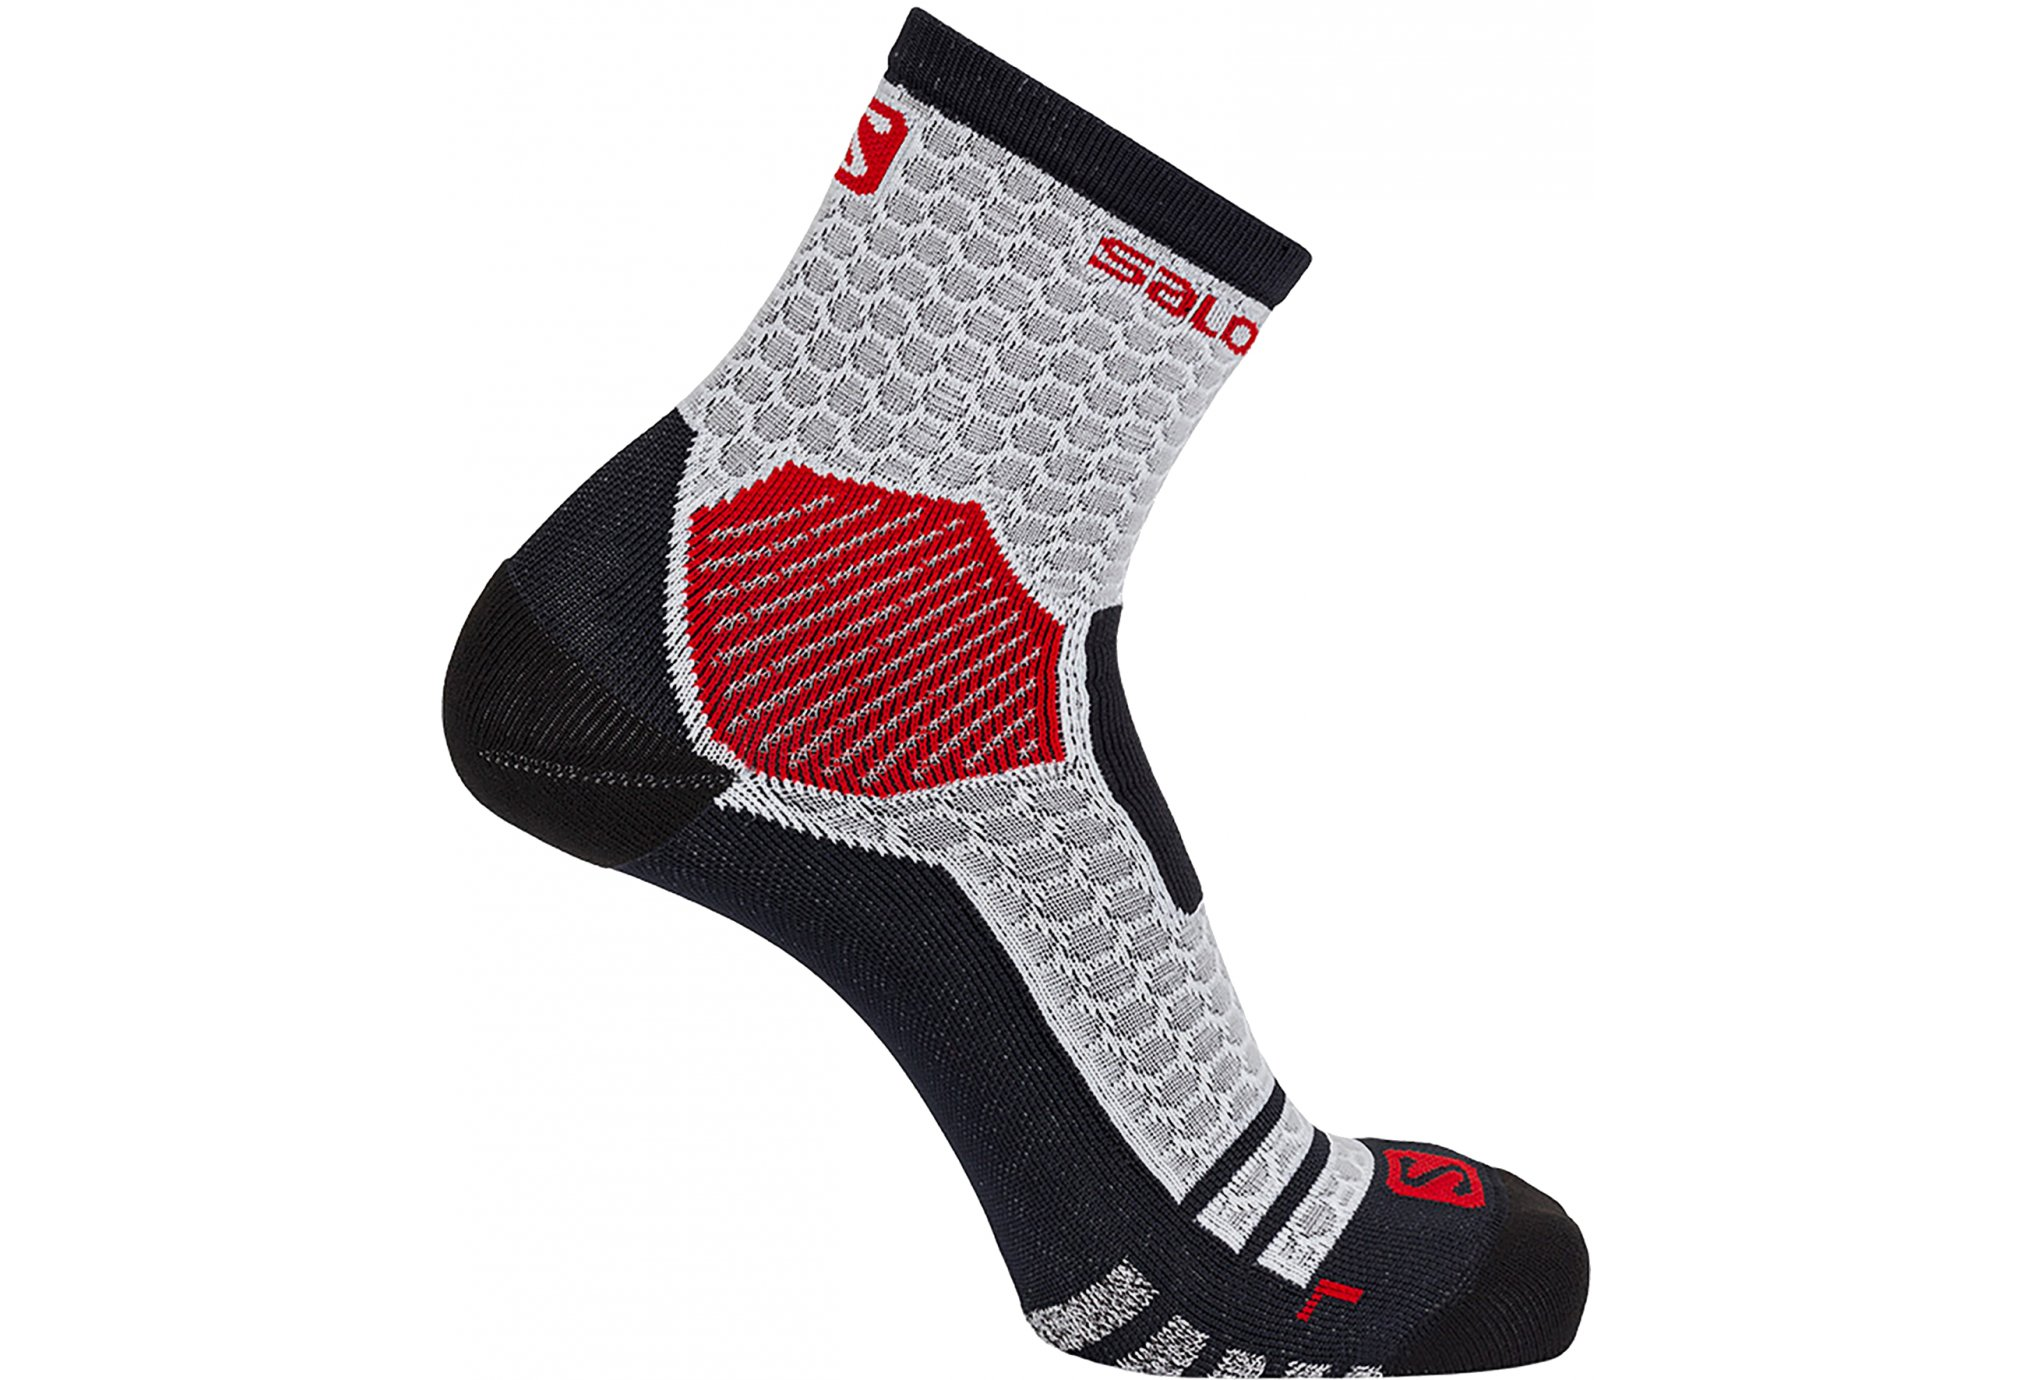 Salomon NSO Long Run Chaussettes